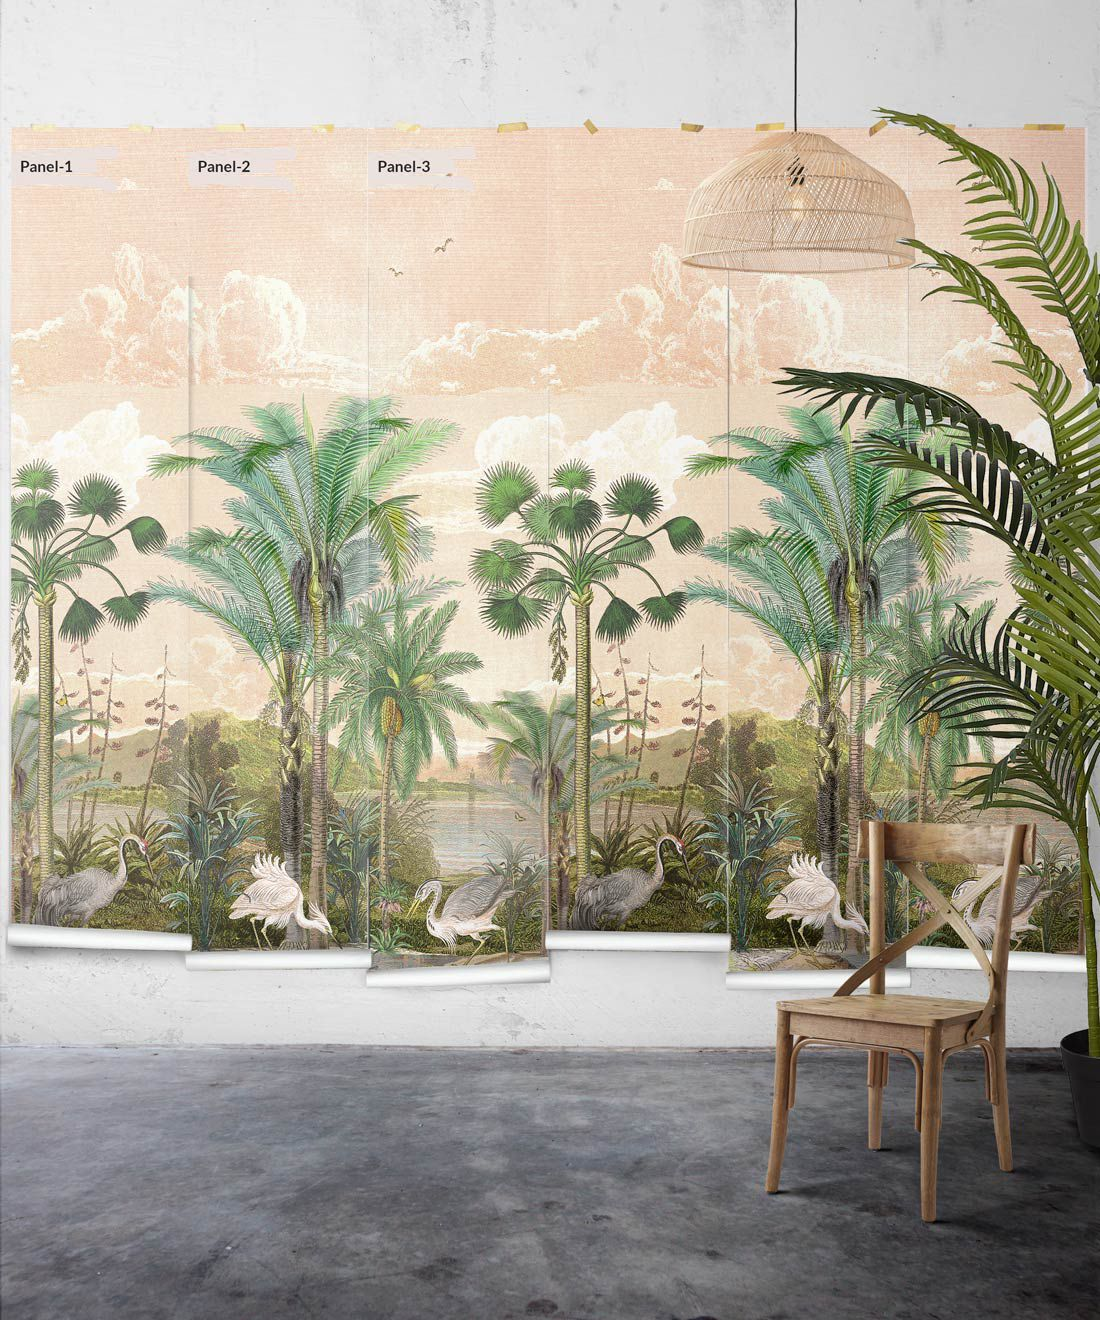 Indian Subcontinent Wallpaper Mural •Bethany Linz • Palm Tree Mural • Pink • Panels